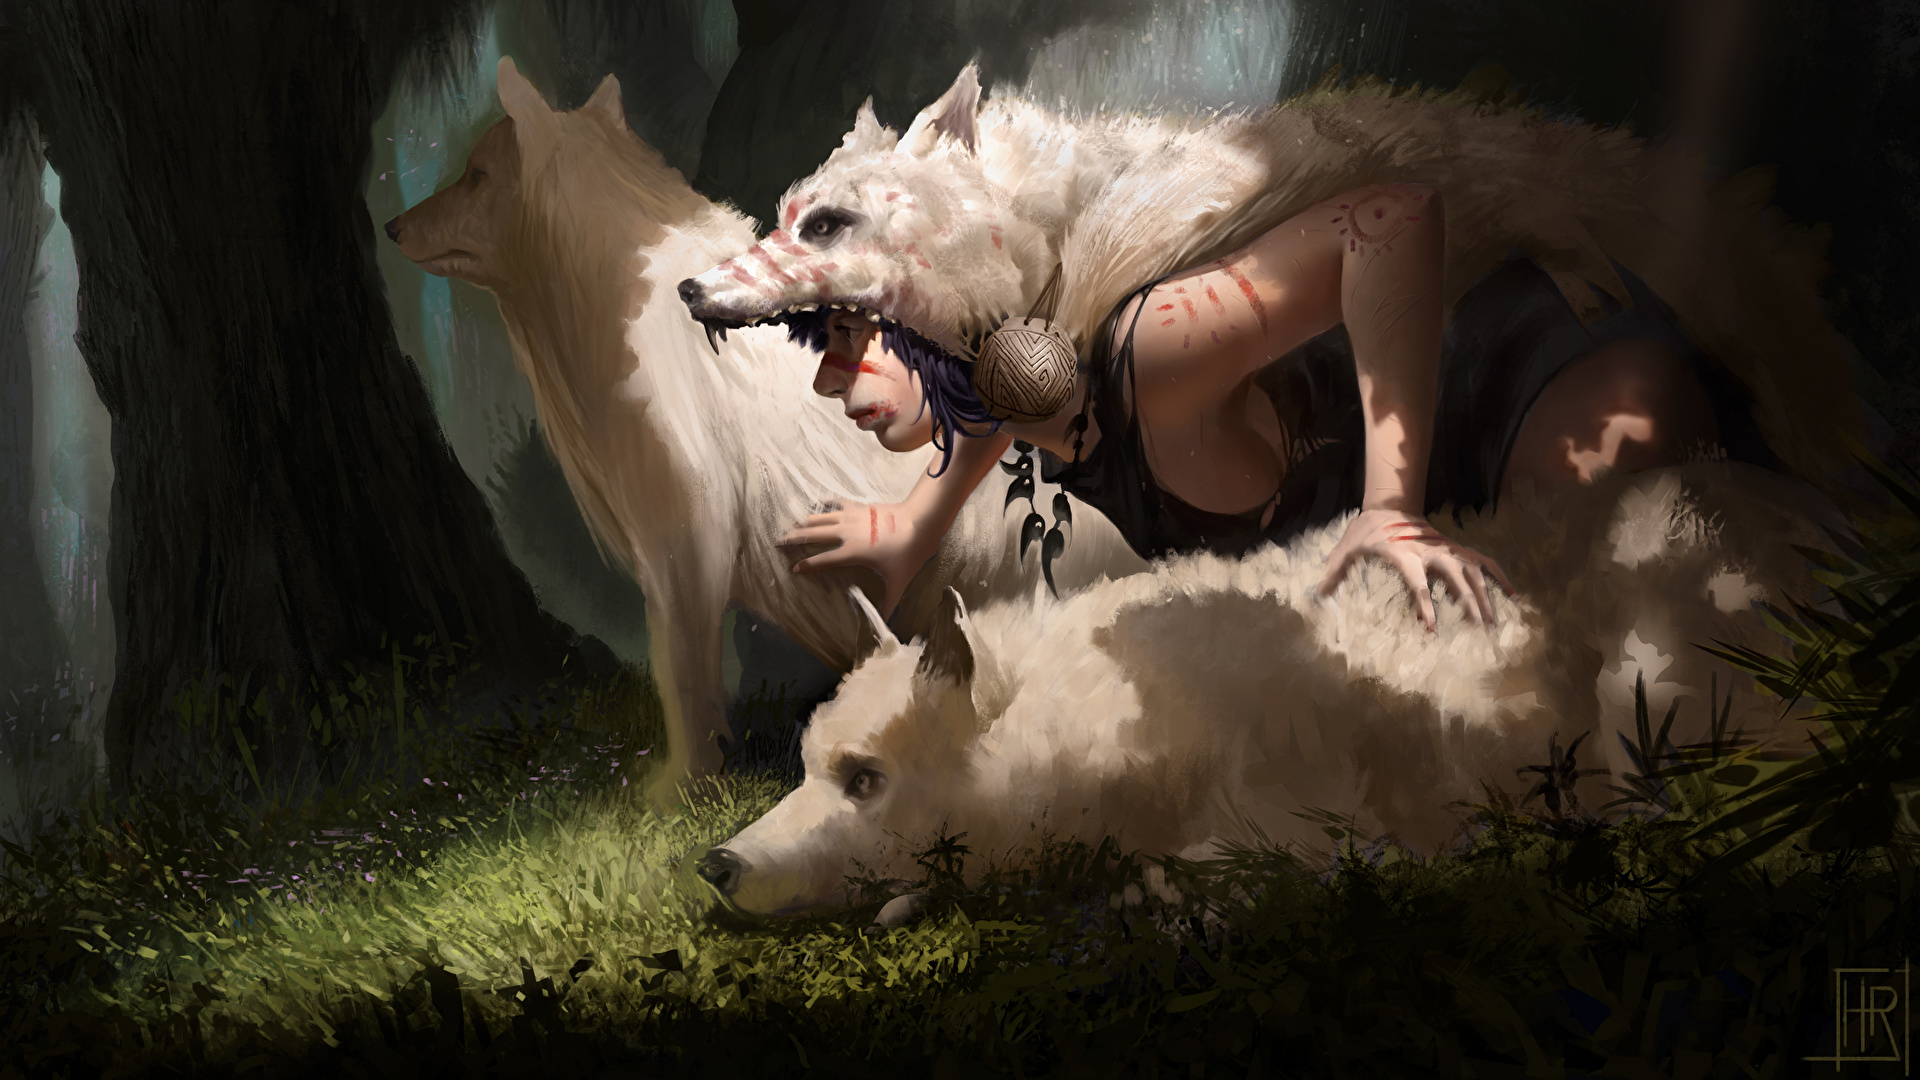 Princess Mononoke Art Faces 1920x1080 Wallpaper Teahub Io